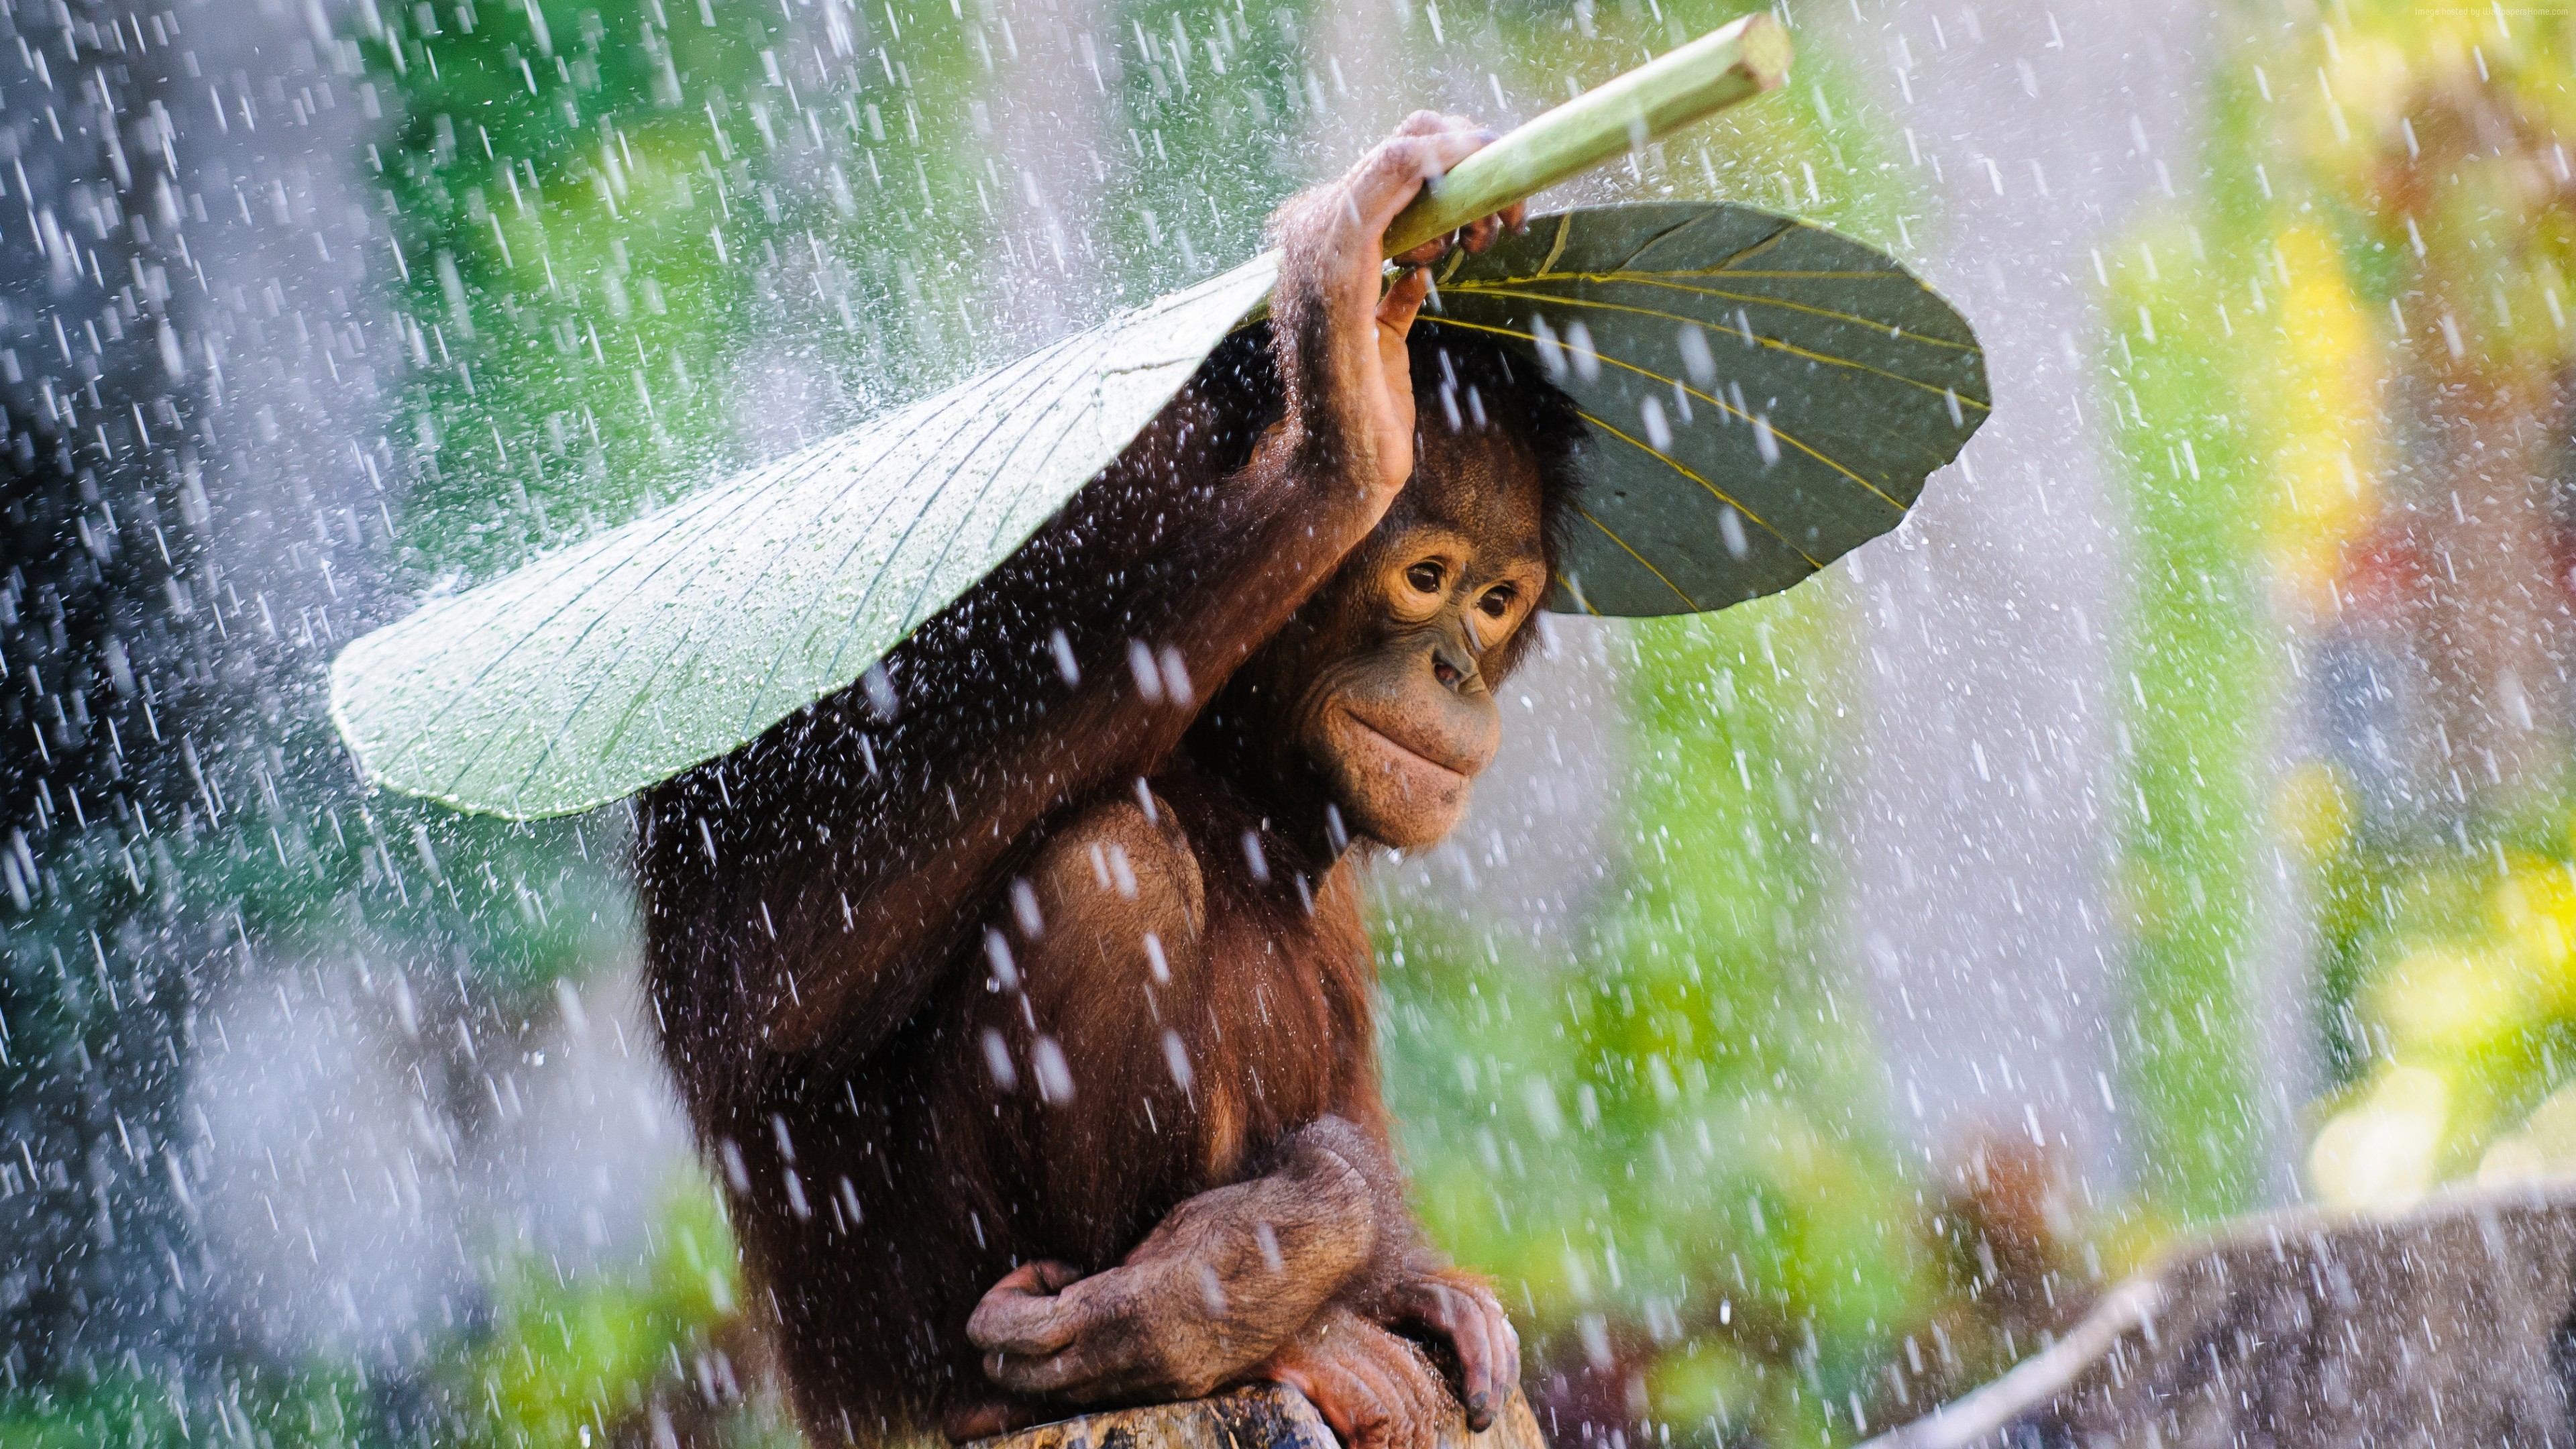 Wallpaper Chimpanzee, Congo River, tourism, banana, leaves, rain, monkey, nature, animal, green, Animals